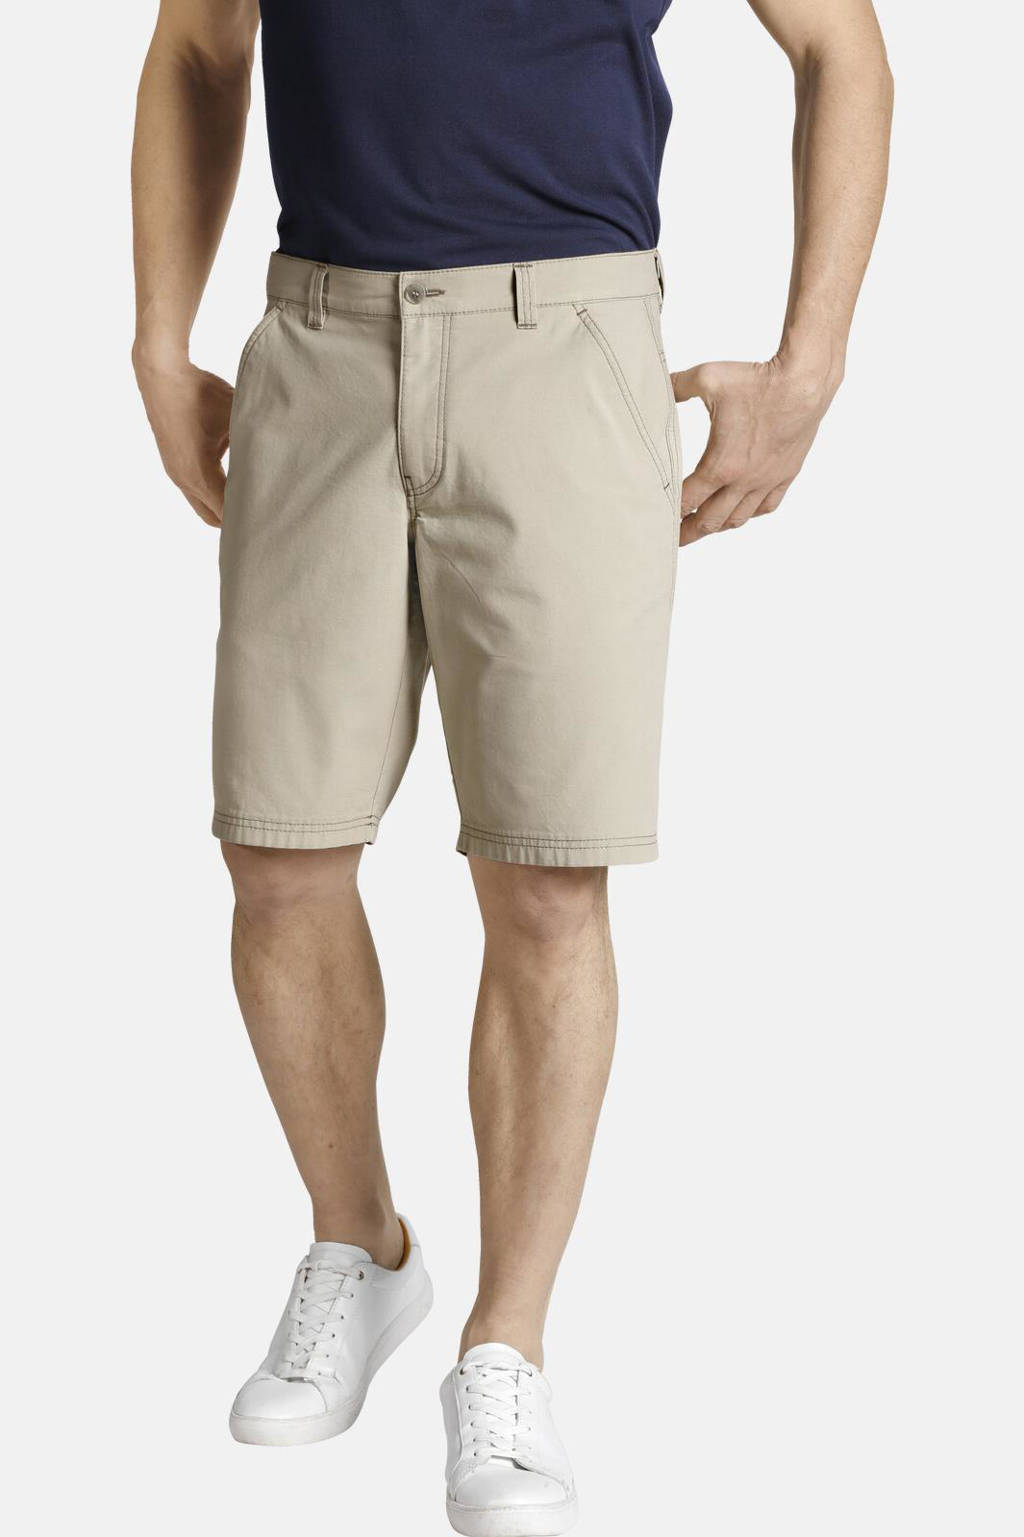 Charles Colby regular fit chino short CLAUDAS Plus Size beige, Beige